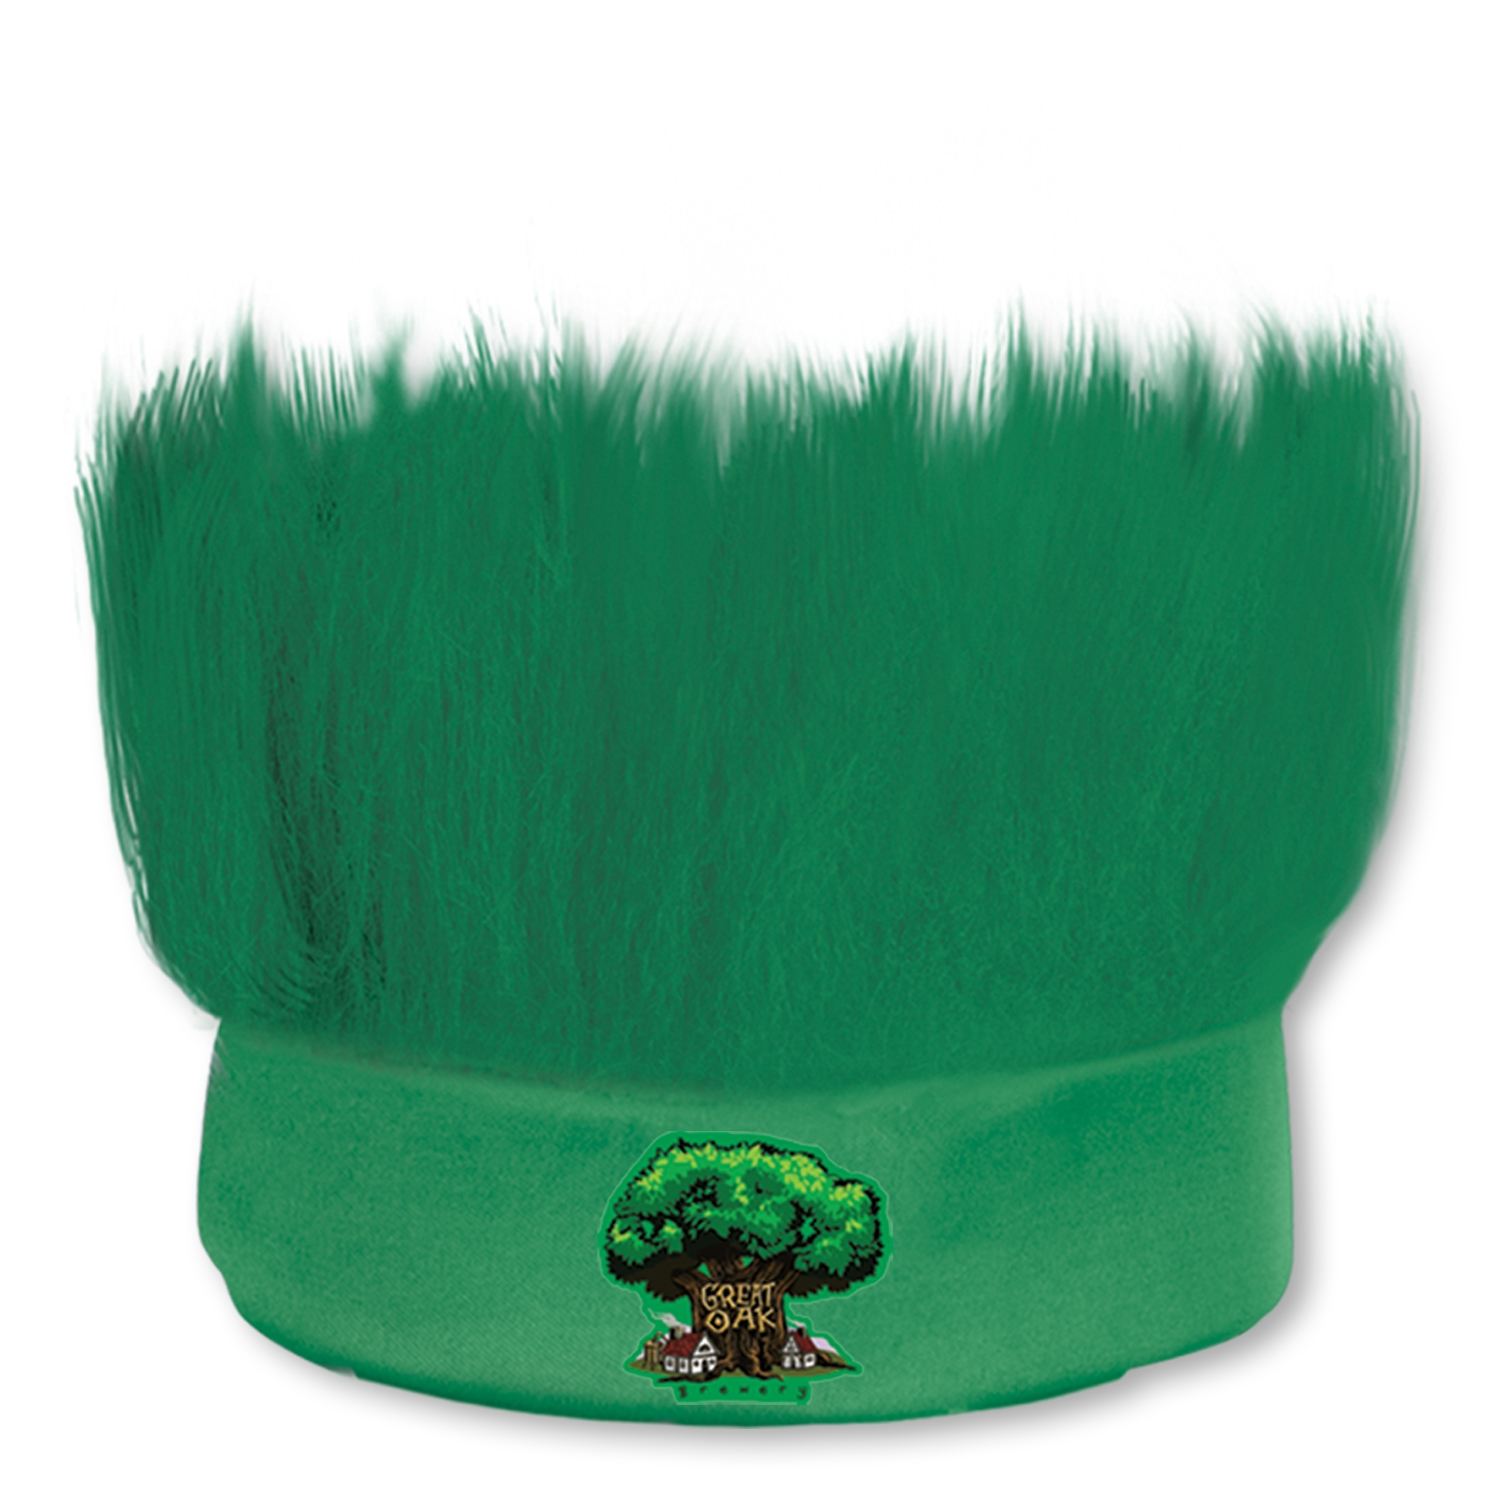 Custom Saint Patricks Day Hairy Headband Custom Saint Patricks Day Hairy Headband, custom, st. paticks day, headband, party favor, green, wholesale, inexpensive, bulk